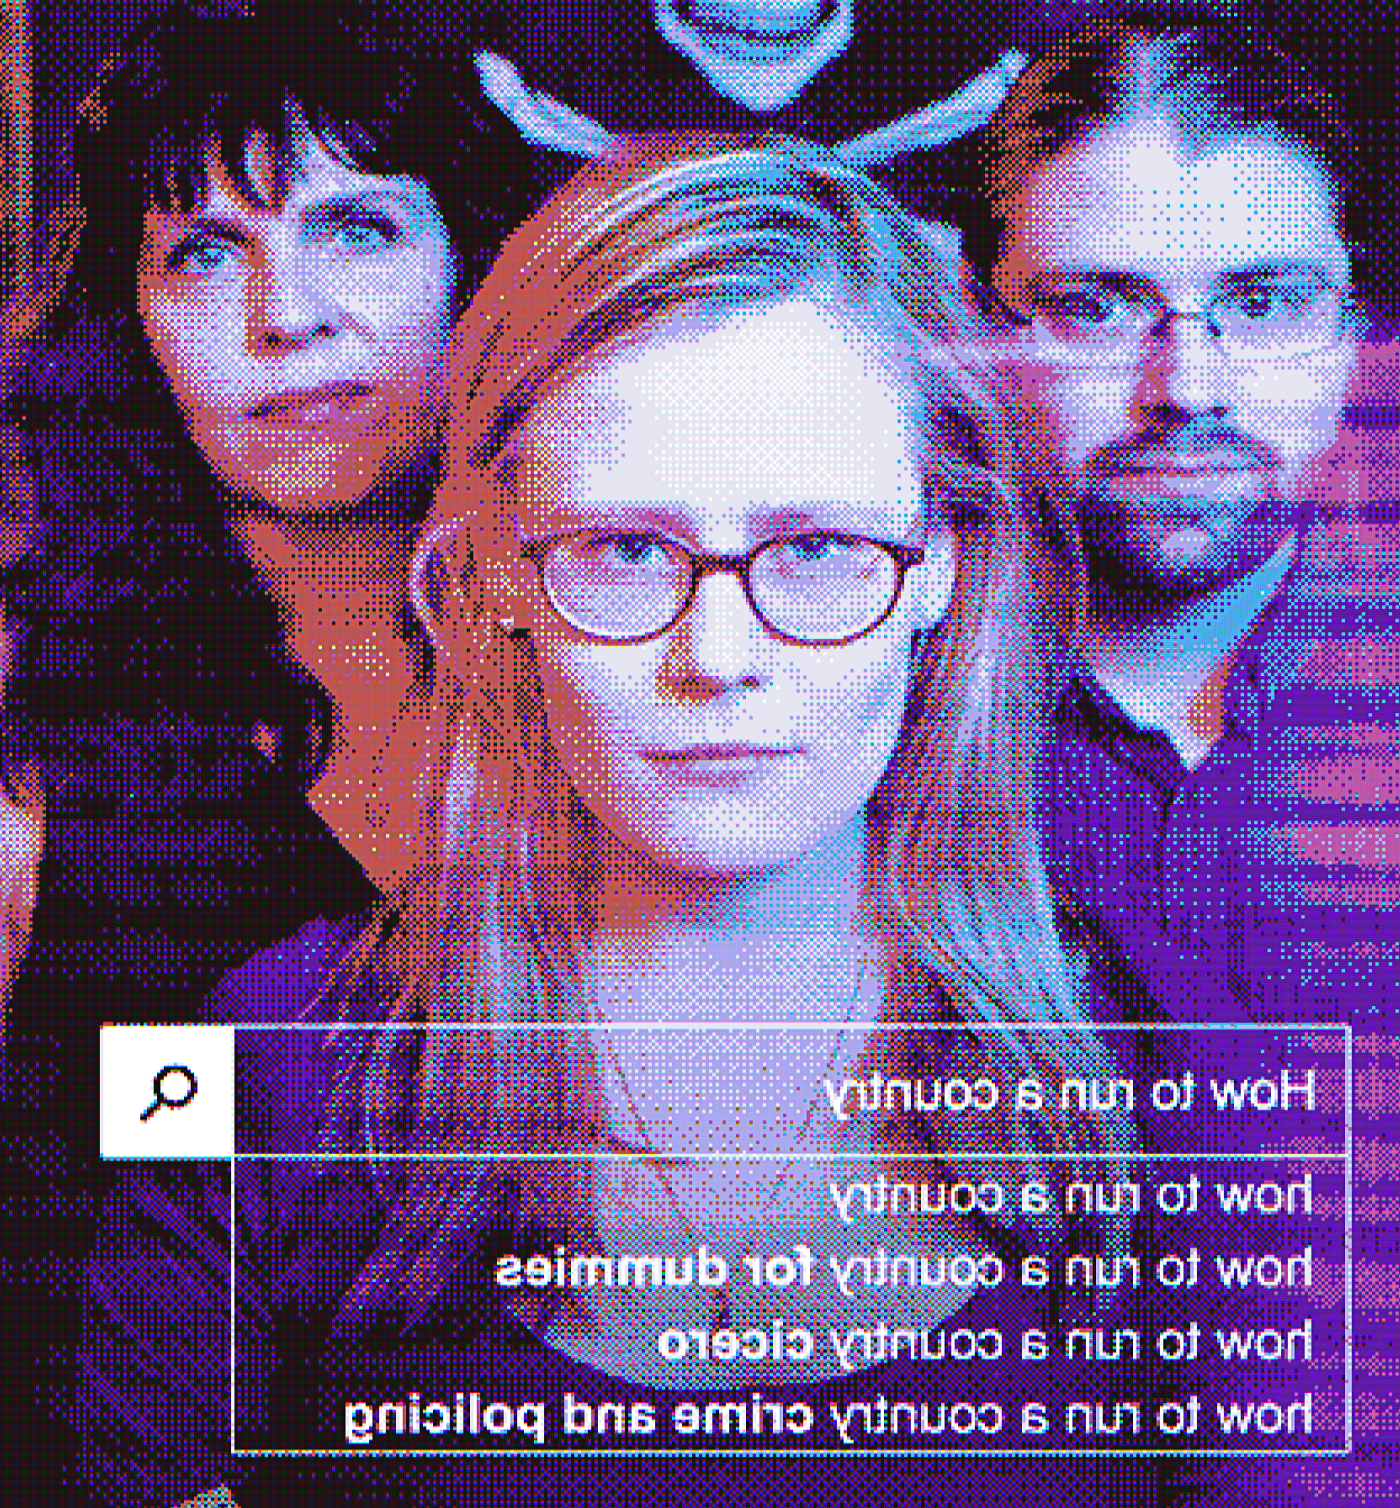 Hacking Politics: An In-Depth Look At Iceland's Pirate Party